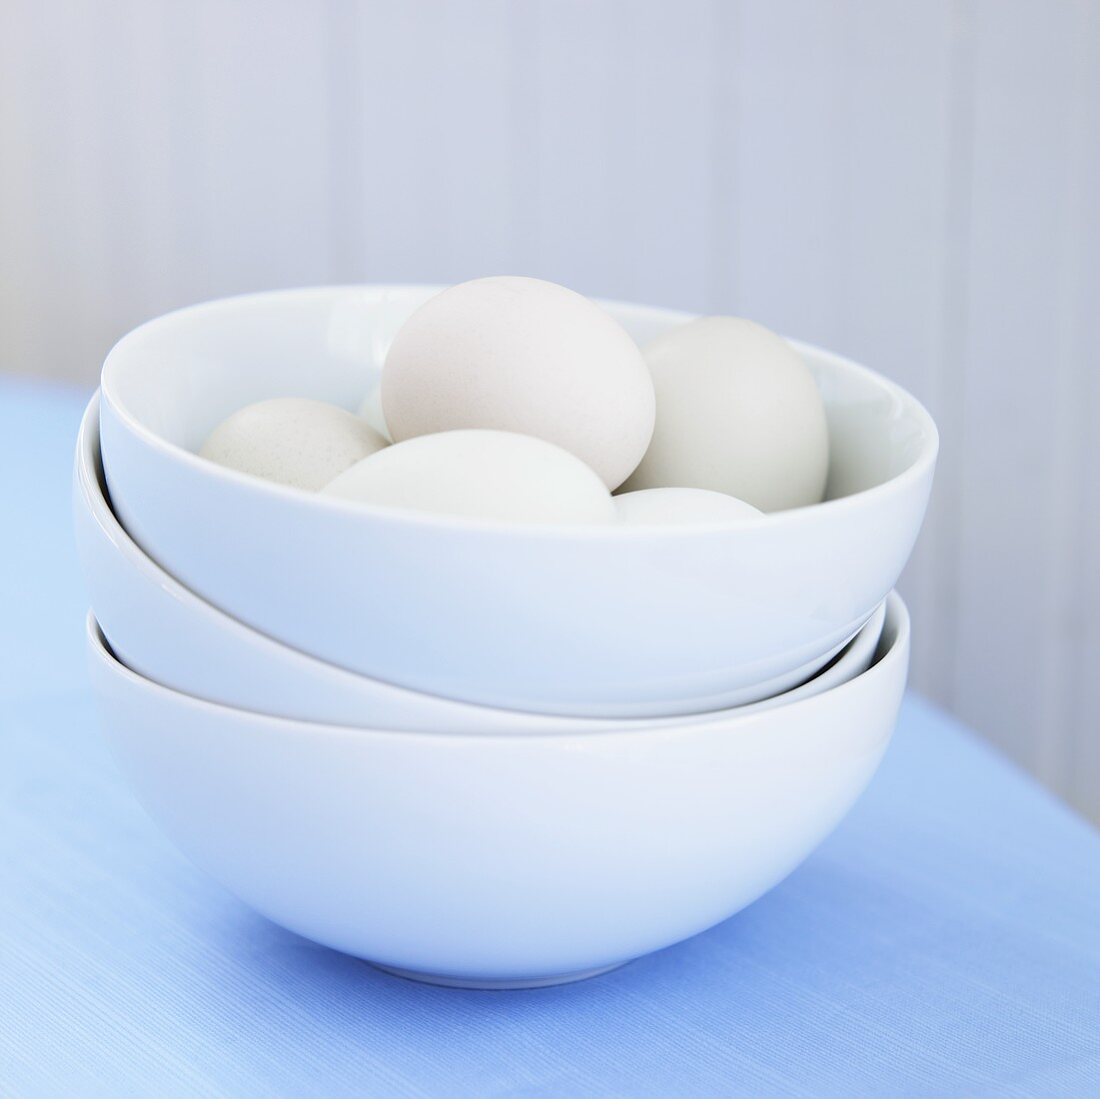 Bowl of Cage Free Hen Eggs; Stacked Bowls